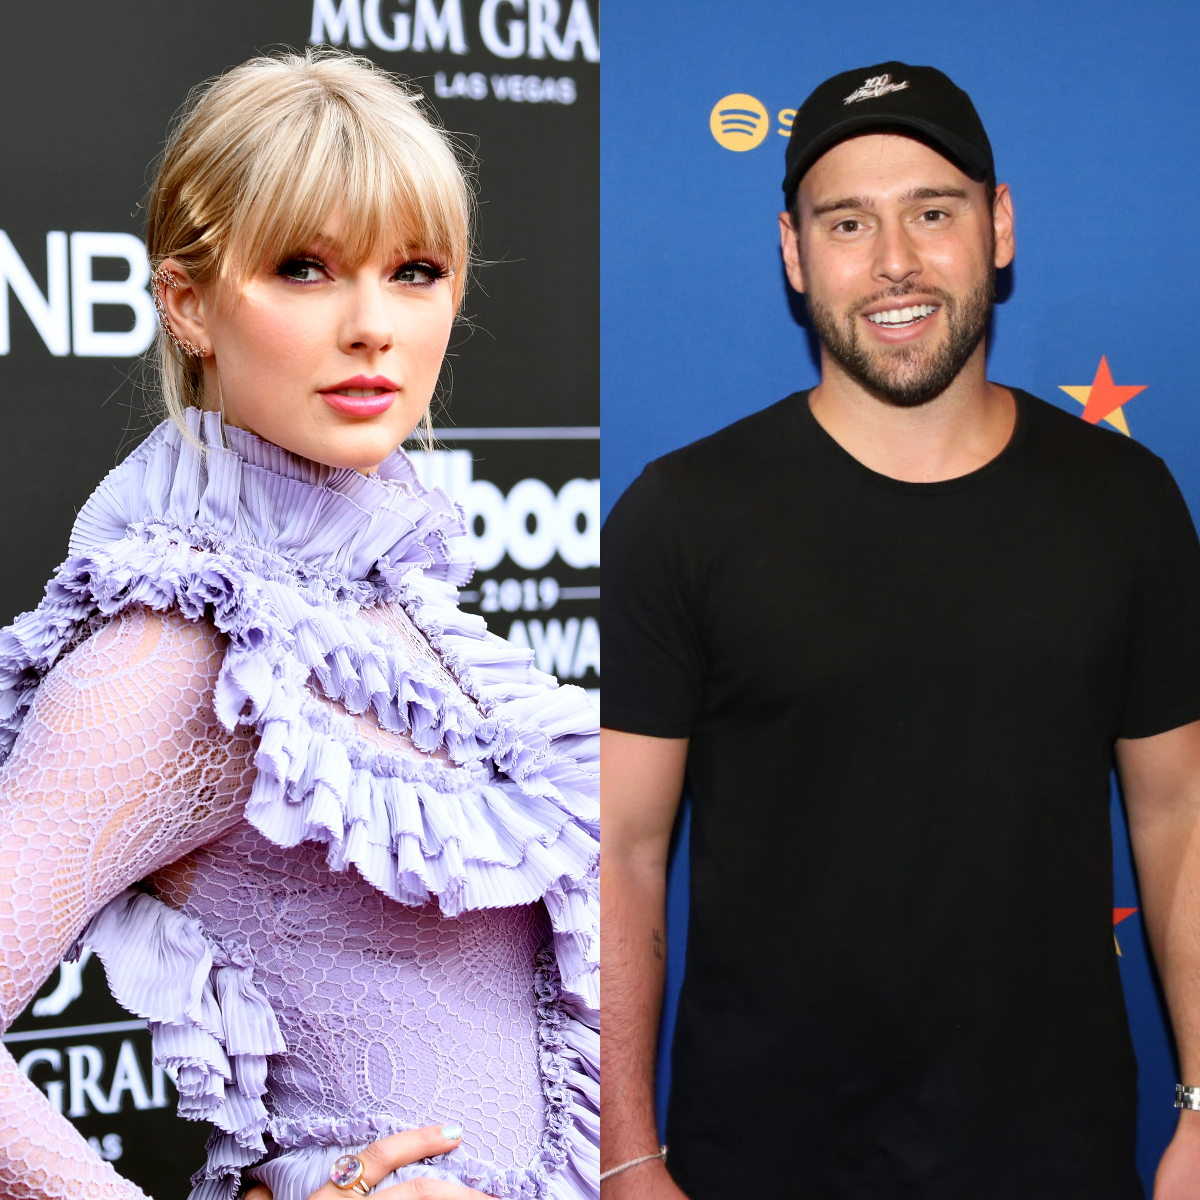 Scooter Braun on Taylor Swift controversy: The truth always comes out and I'm confident in that